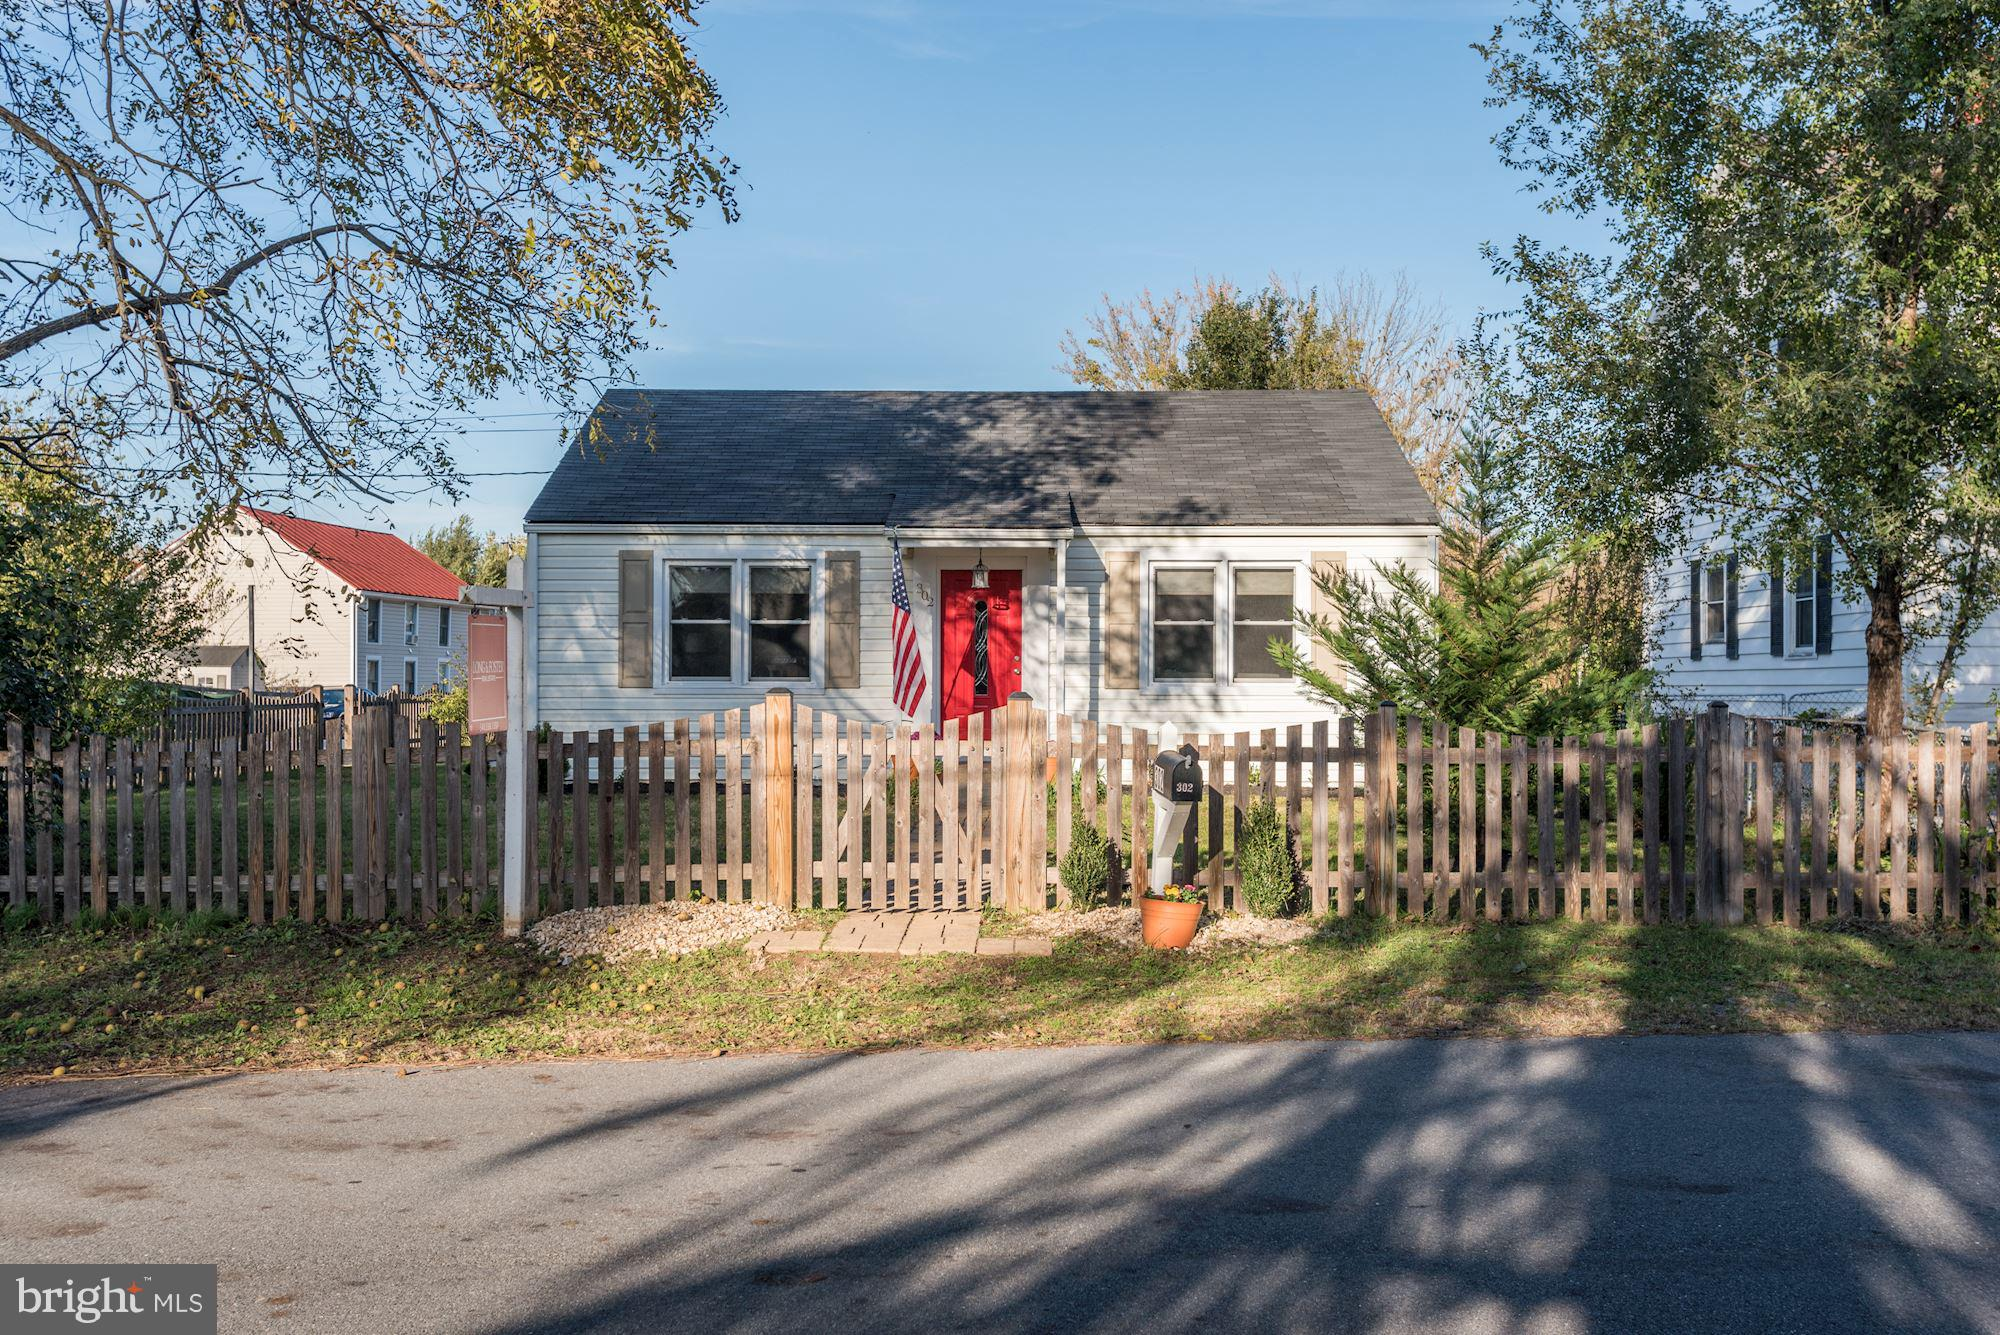 4 Bedroom 2 full bath bungalow rancher on a quaint lot in Berryville. Adorably remodeled inside-Newe